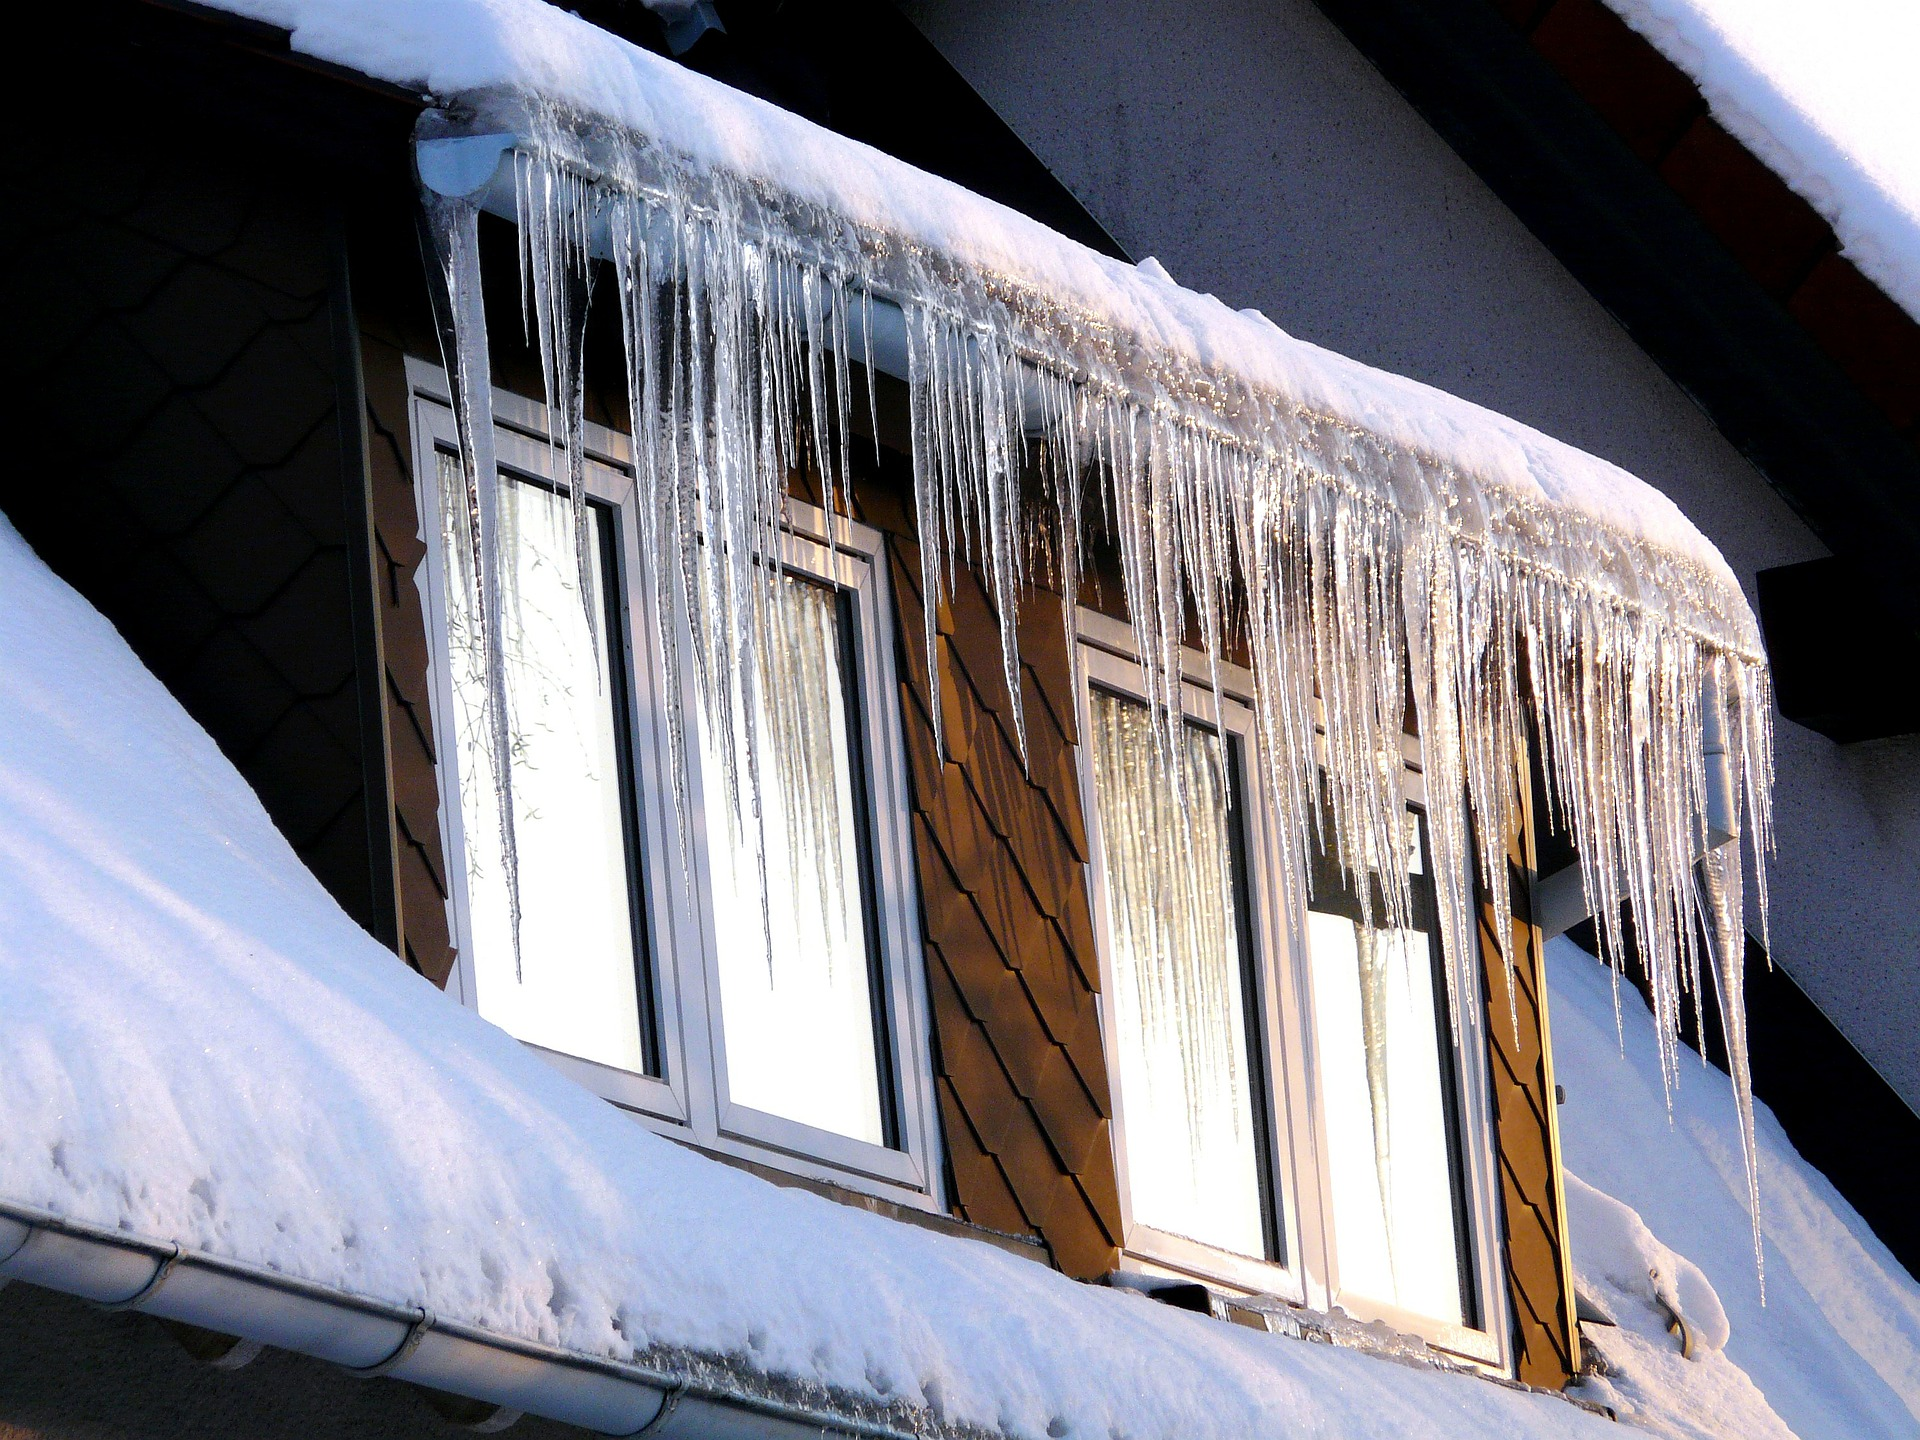 icicles on window picture